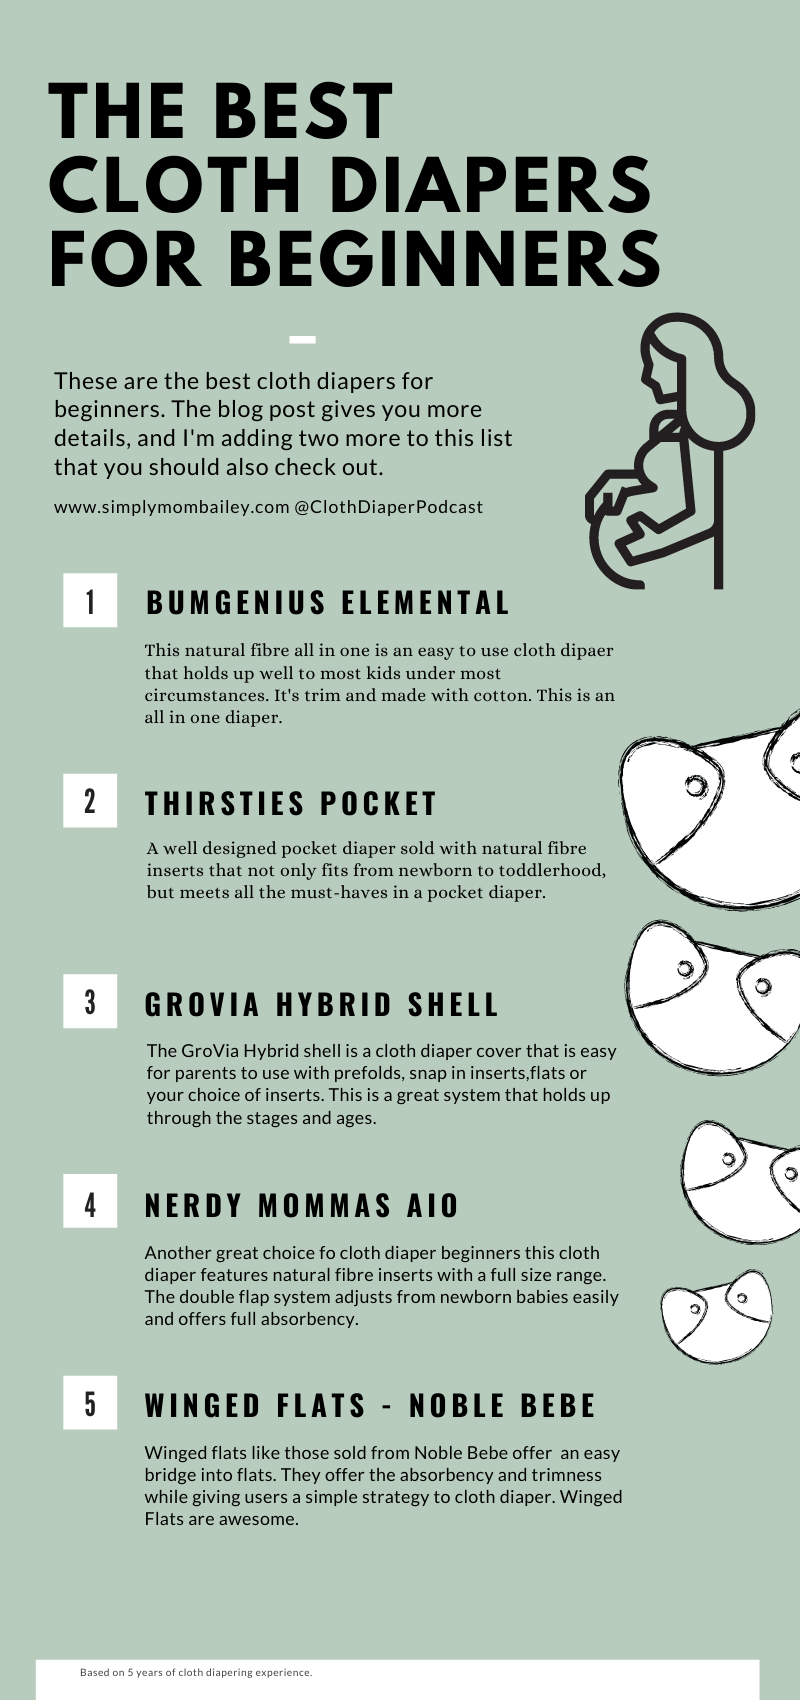 Best Cloth Diapers for Beginners